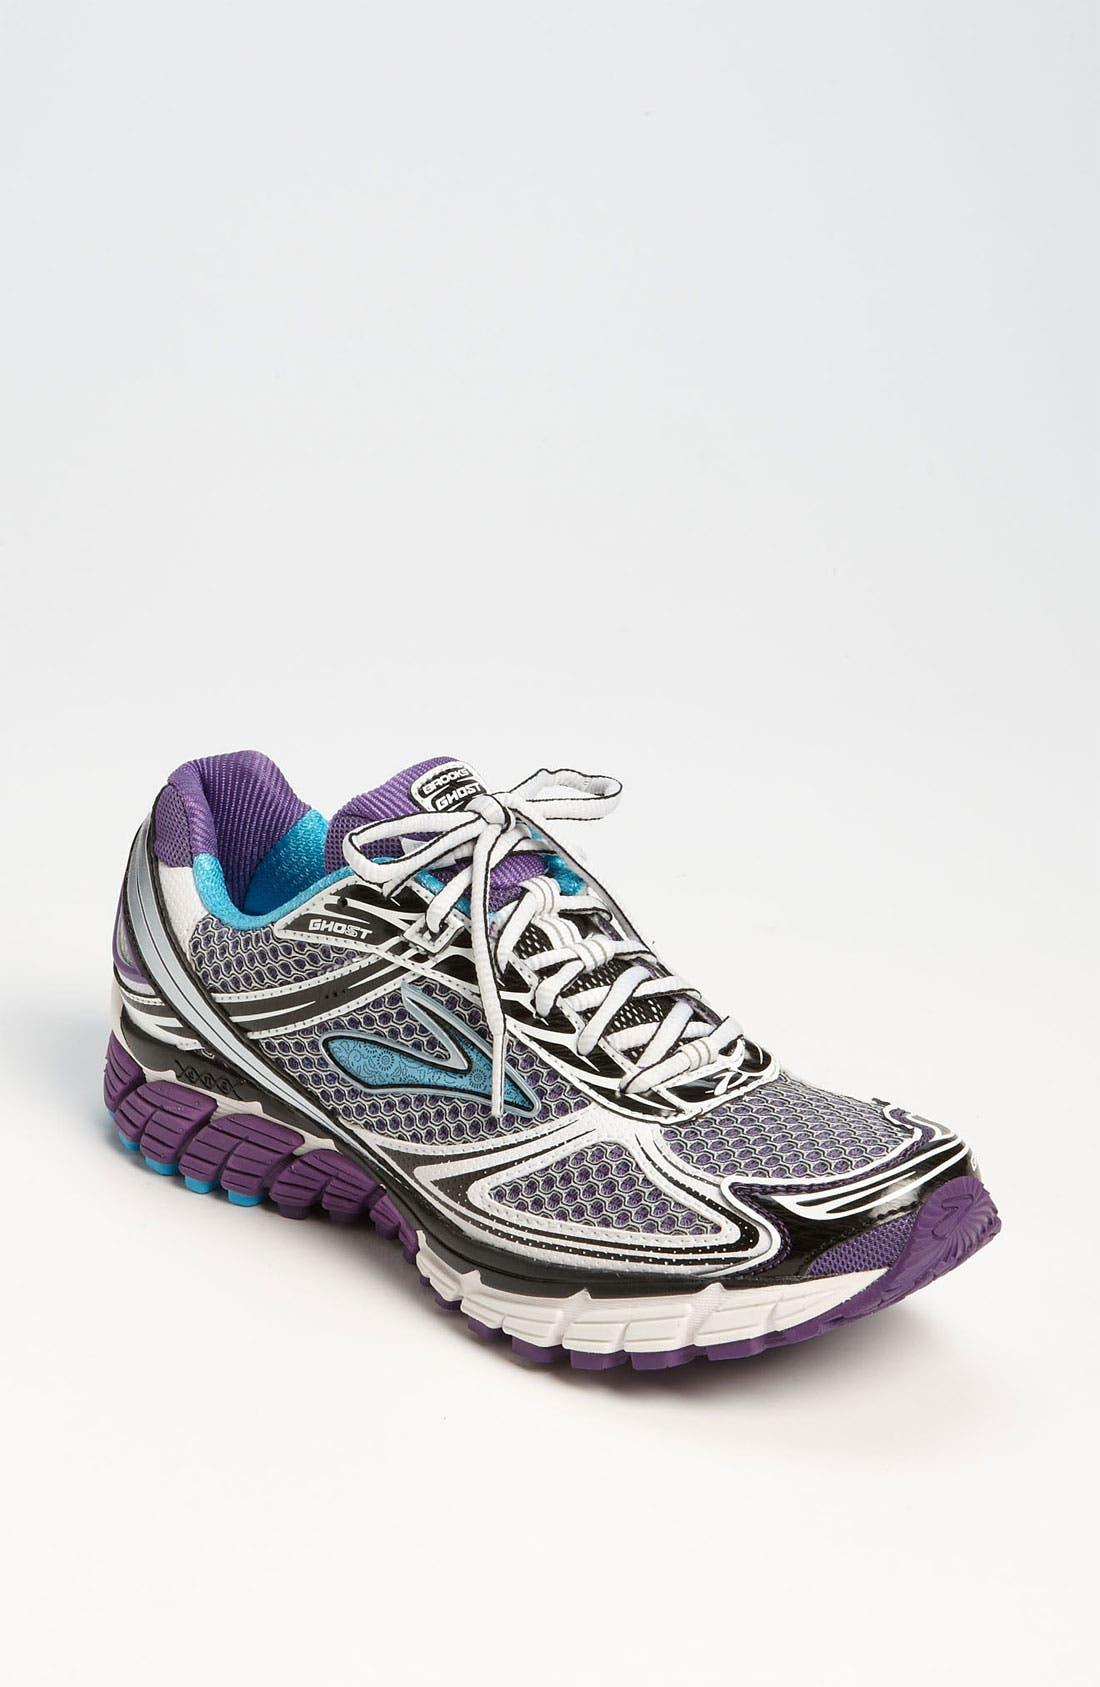 Alternate Image 1 Selected - Brooks 'Ghost 5' Running Shoe (Women) (Regular Retail Price: $109.95)